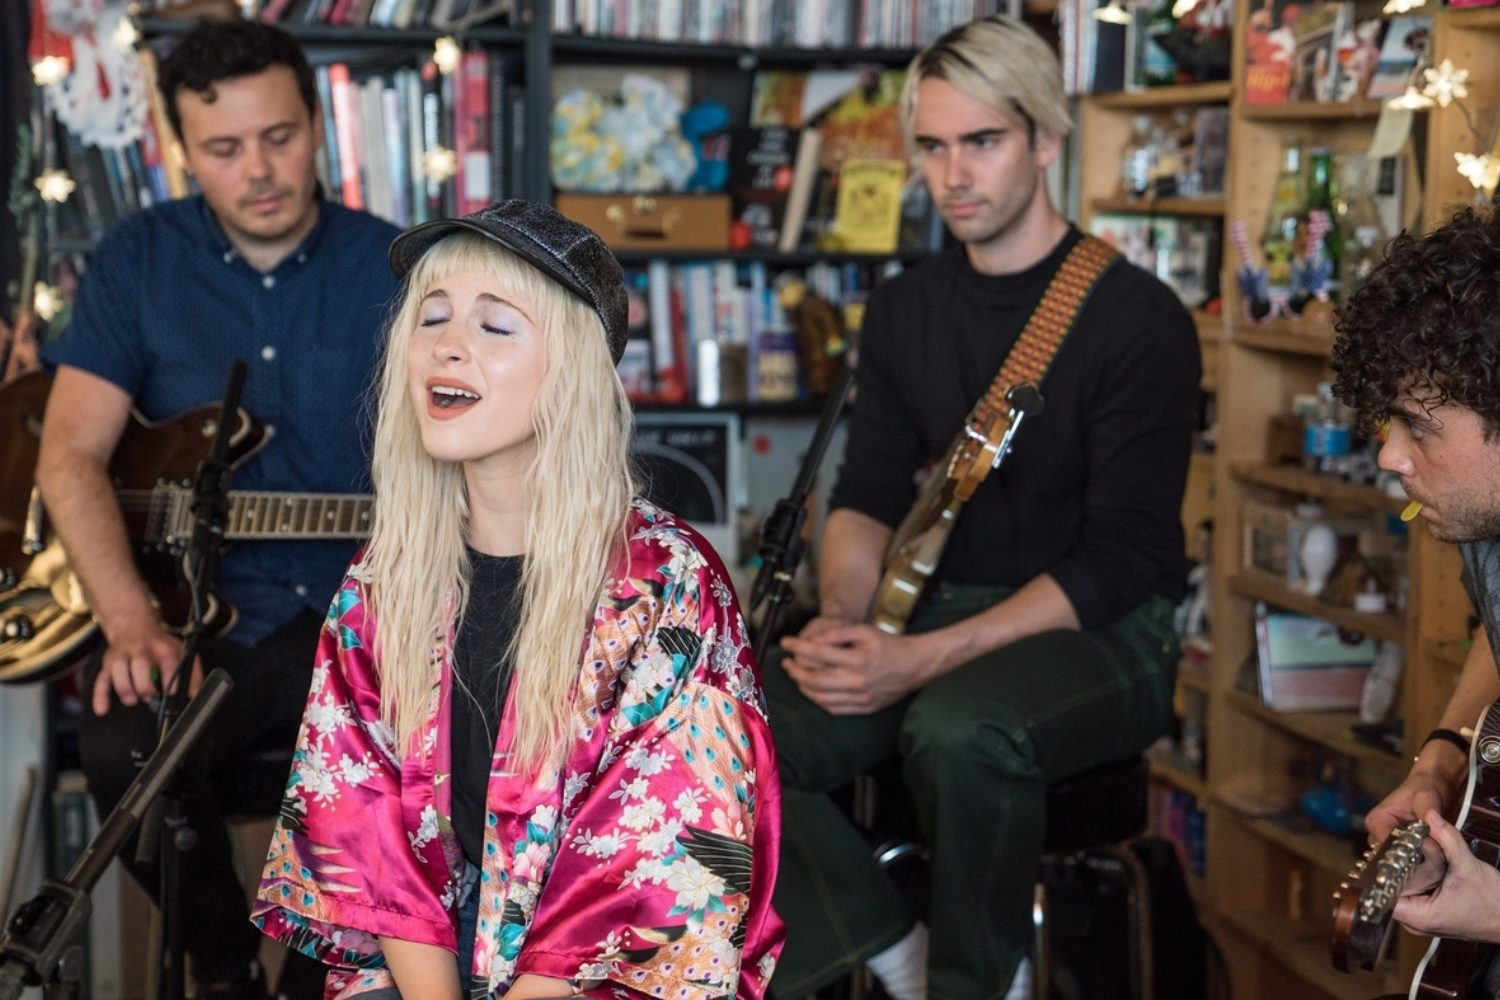 Watch Paramore bring 'After Laughter' to an NPR Tiny Desk Concert